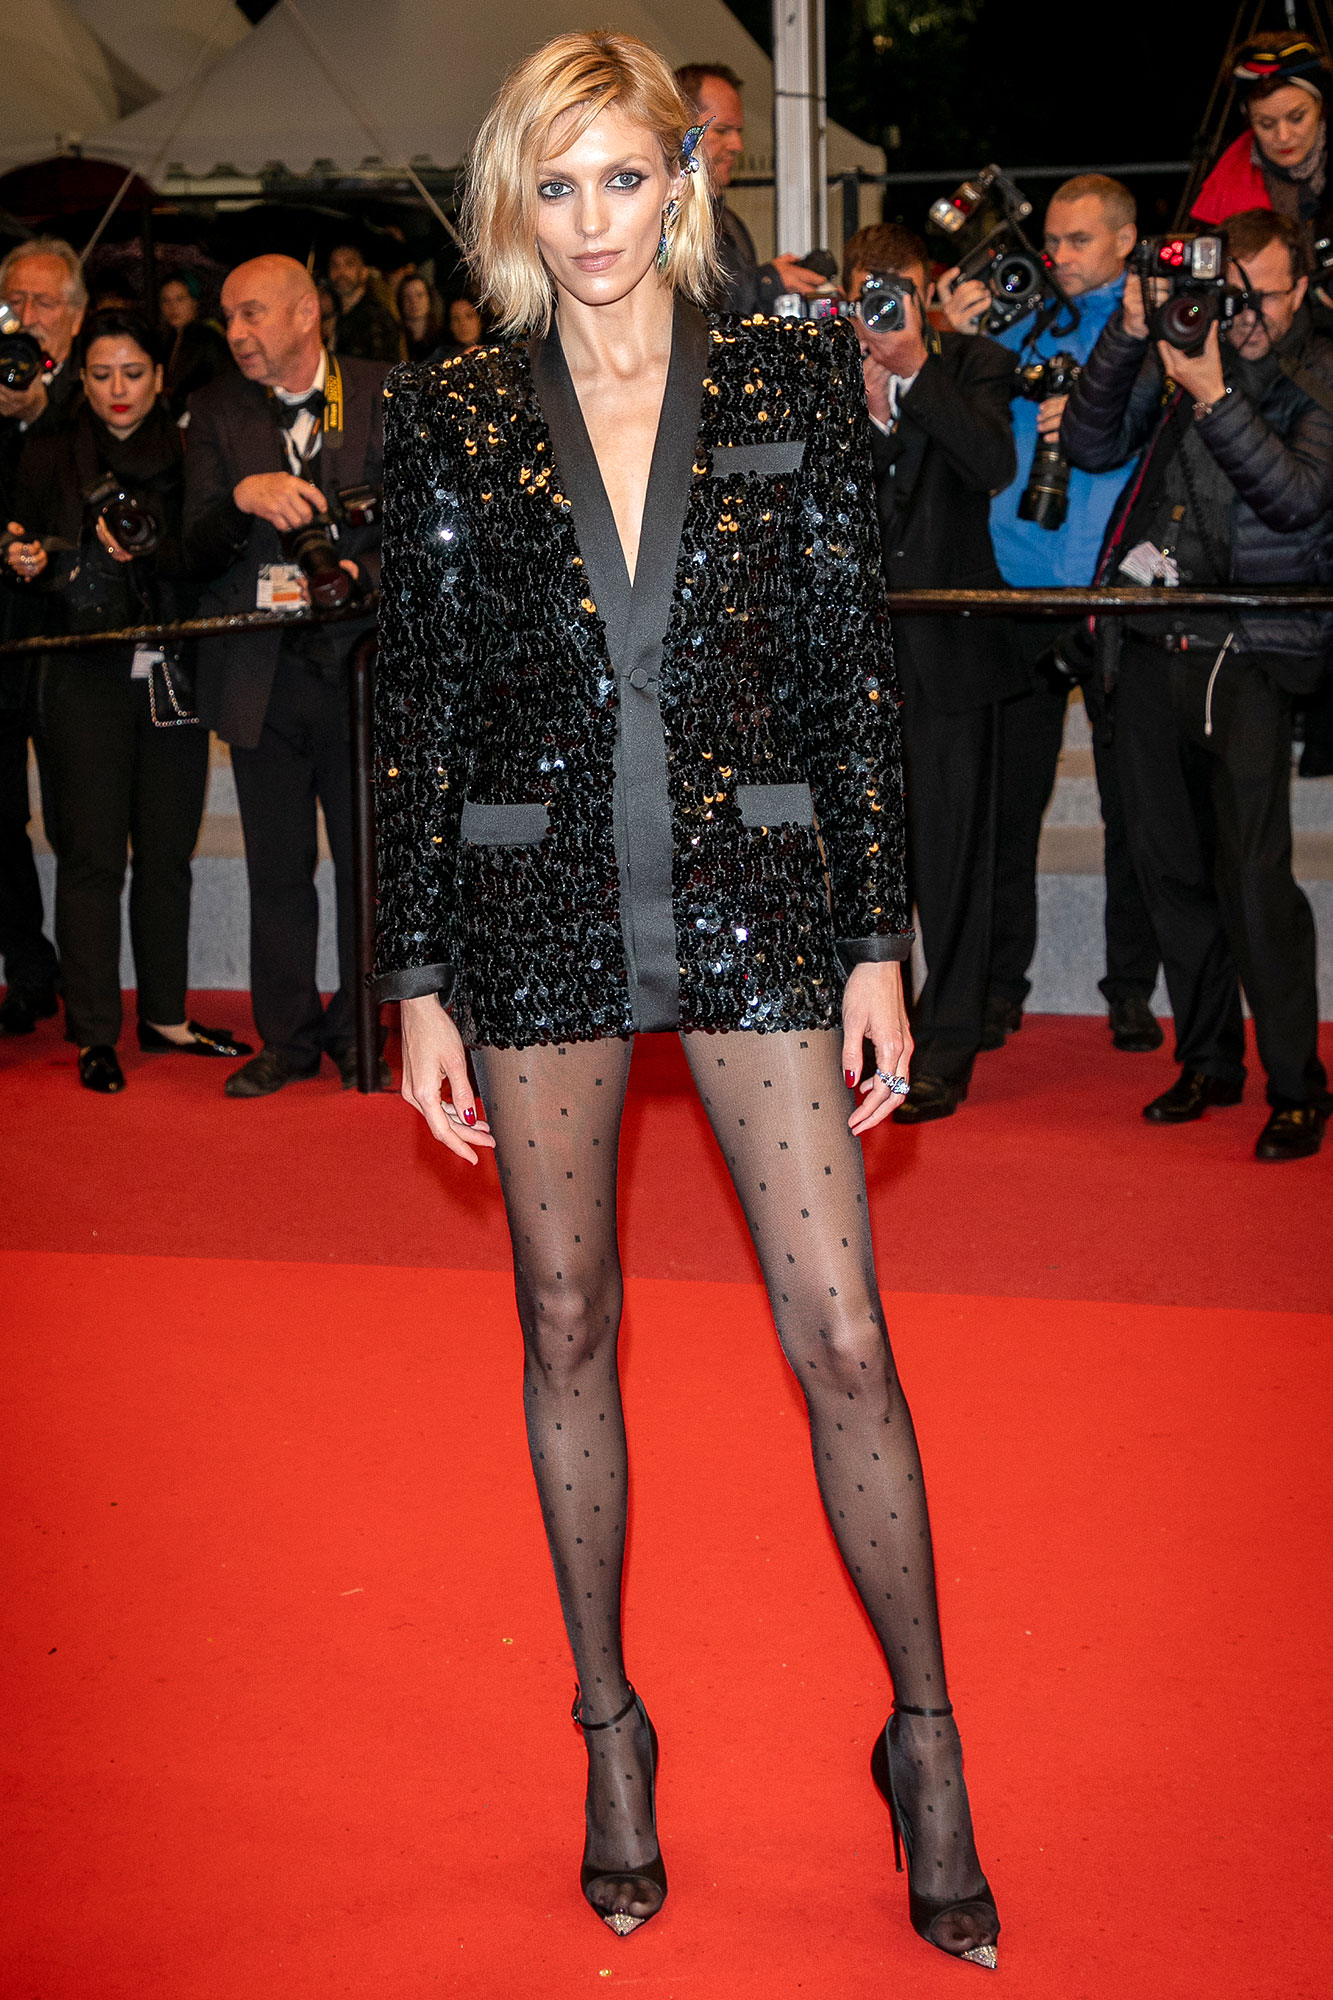 Anja Rubik Stepping Out in Style at Cannes Film Festival - Keeping things short and sweet, the model sparkled in a sequined Saint Laurent tuxedo-inspired minidress at the Lux Aetterna screening on Saturday, May 18.